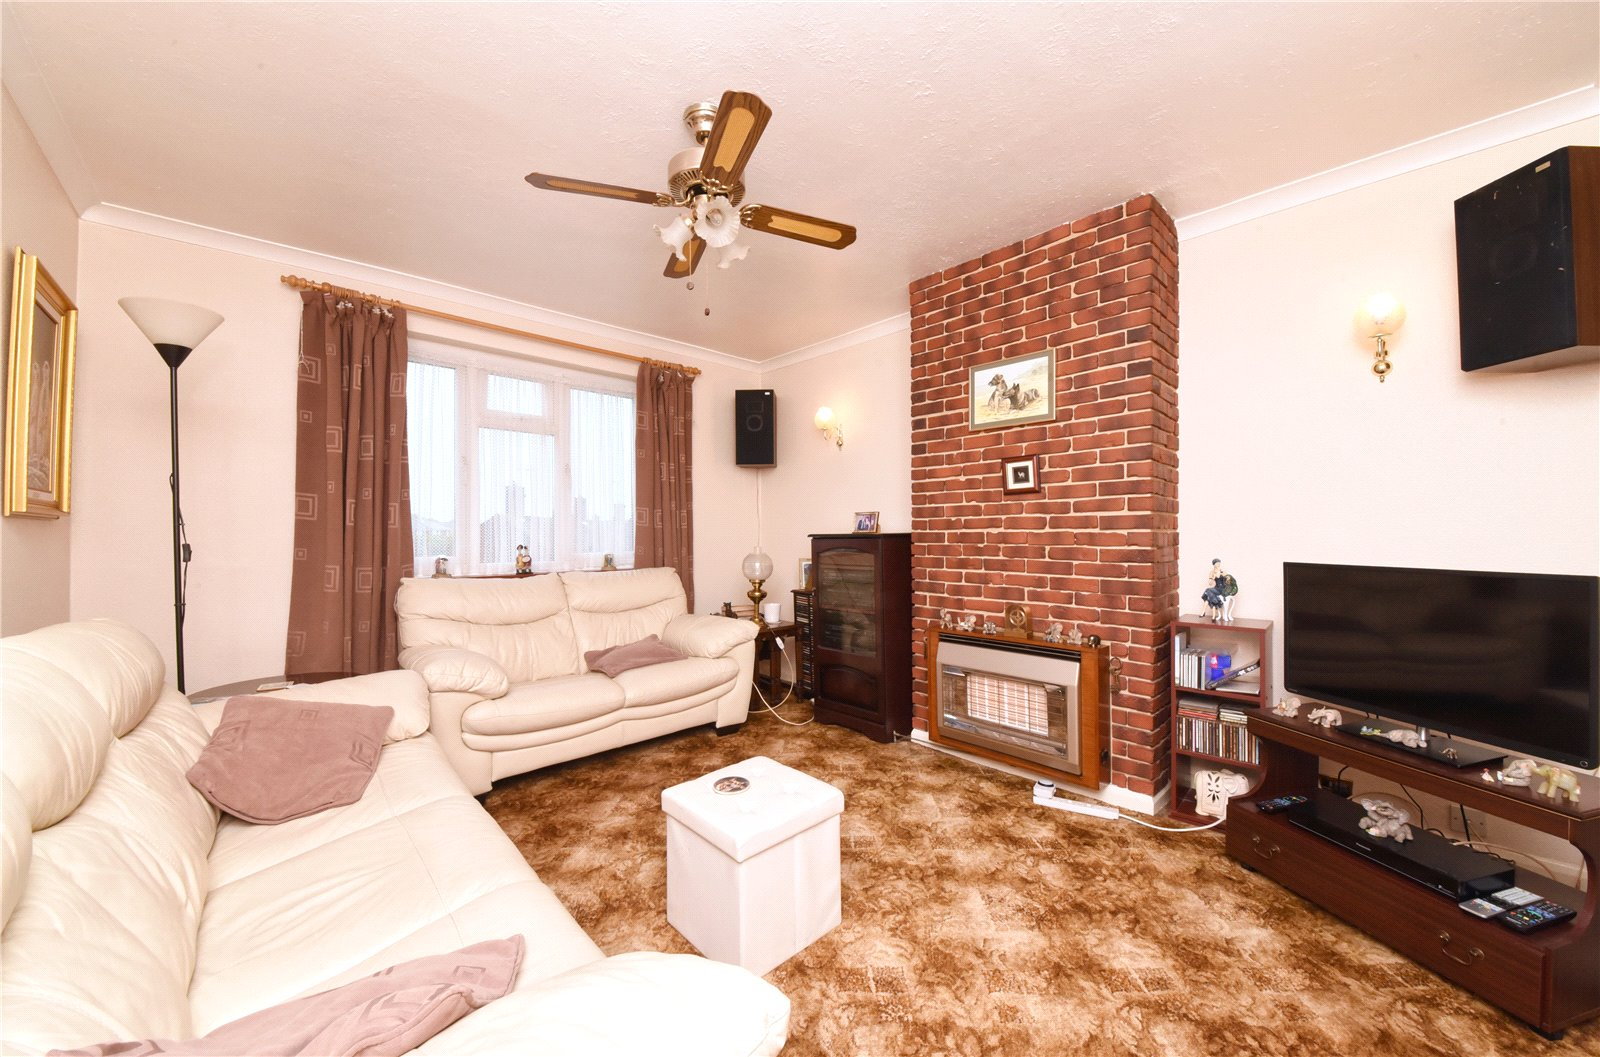 3 bed house for sale in Whetstone, N20 0DG 1